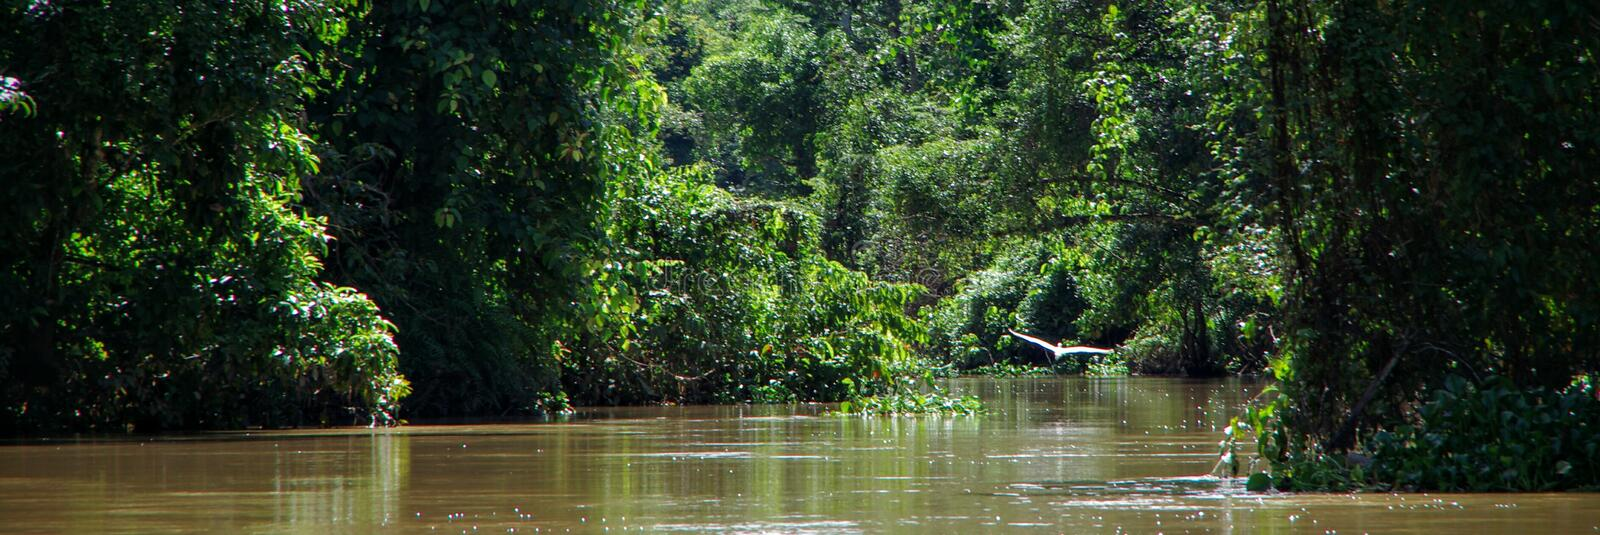 Kinabatangan River. The Kinabatangan River Malay: Sungai Kinabatangan is a river in Sabah, Malaysia. It is the second longest river in Malaysia, [1] with a royalty free stock photo